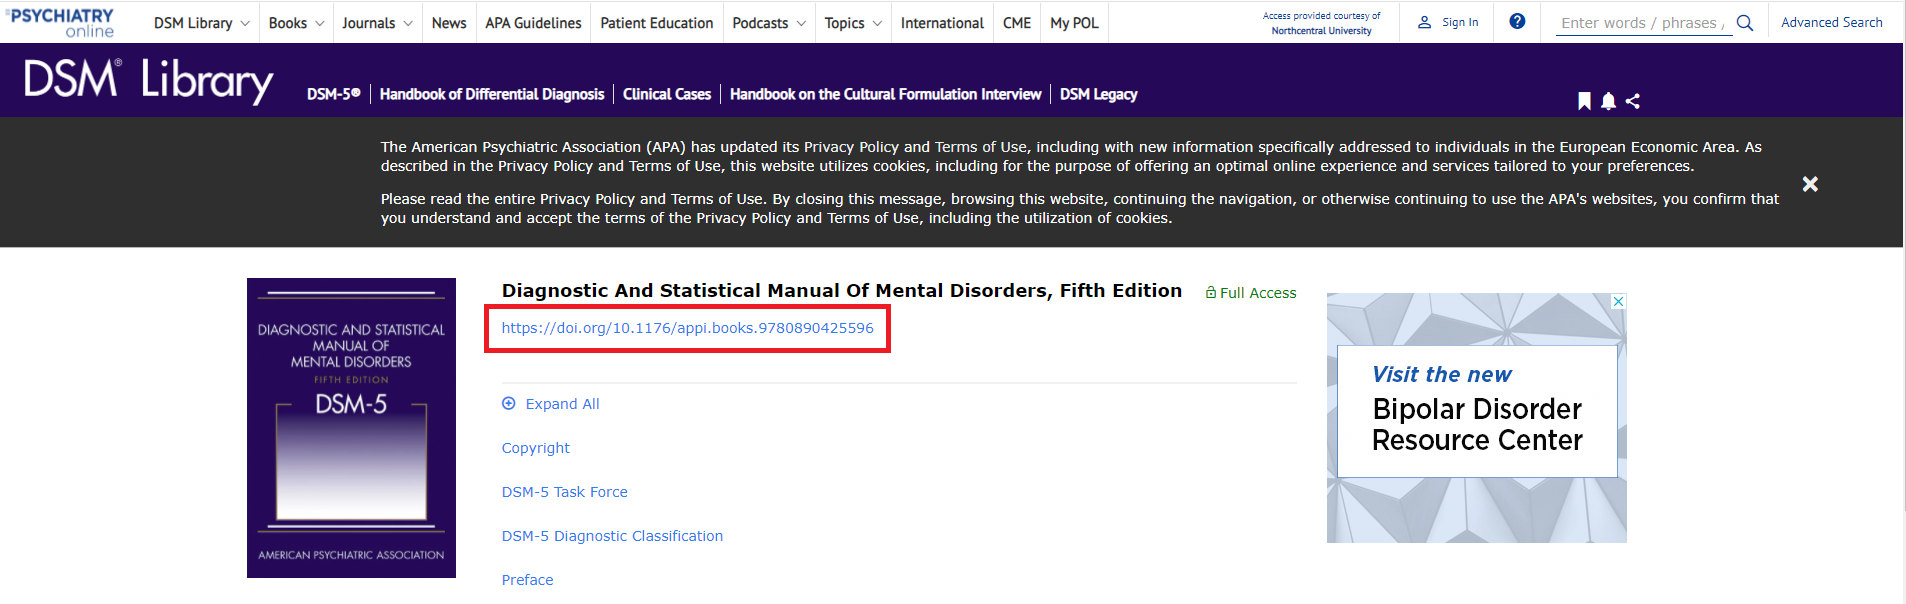 Psychiatry Online resource landing page with DOI link highlighted